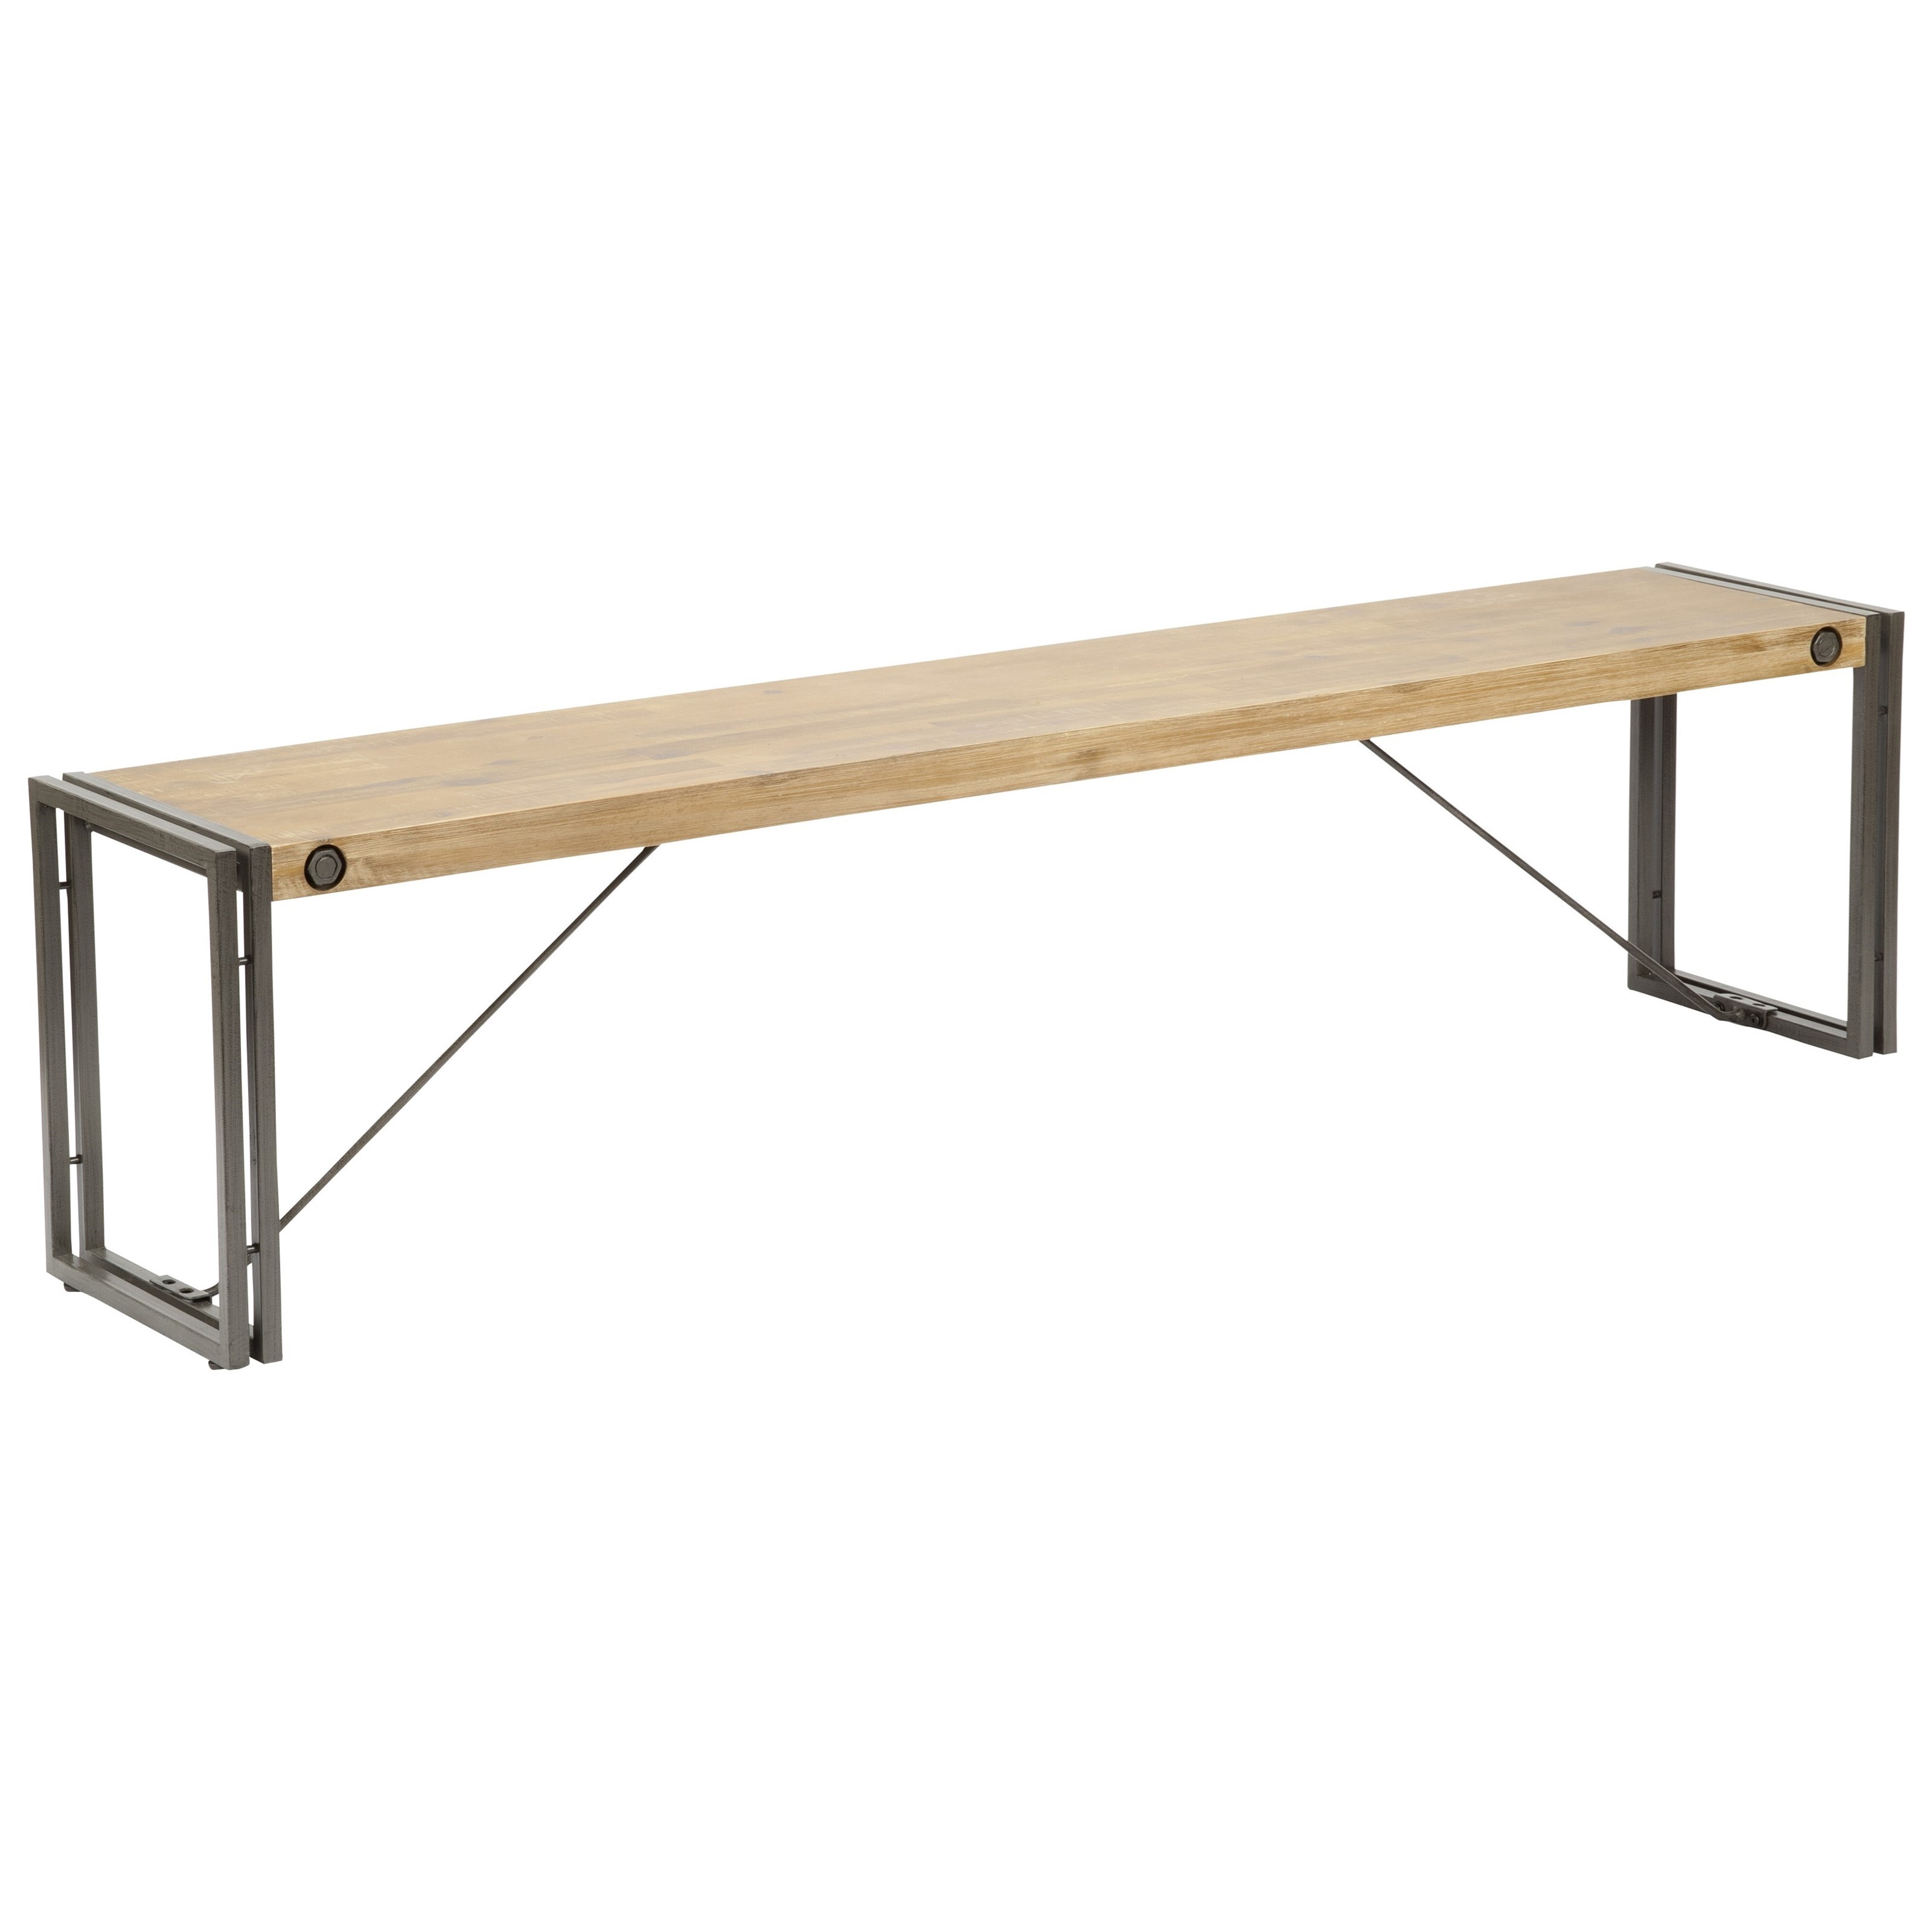 Moe's Home Collection Brooklyn Large Wooden Bench with Metal Stretchers - Item Number: WN-1002-20